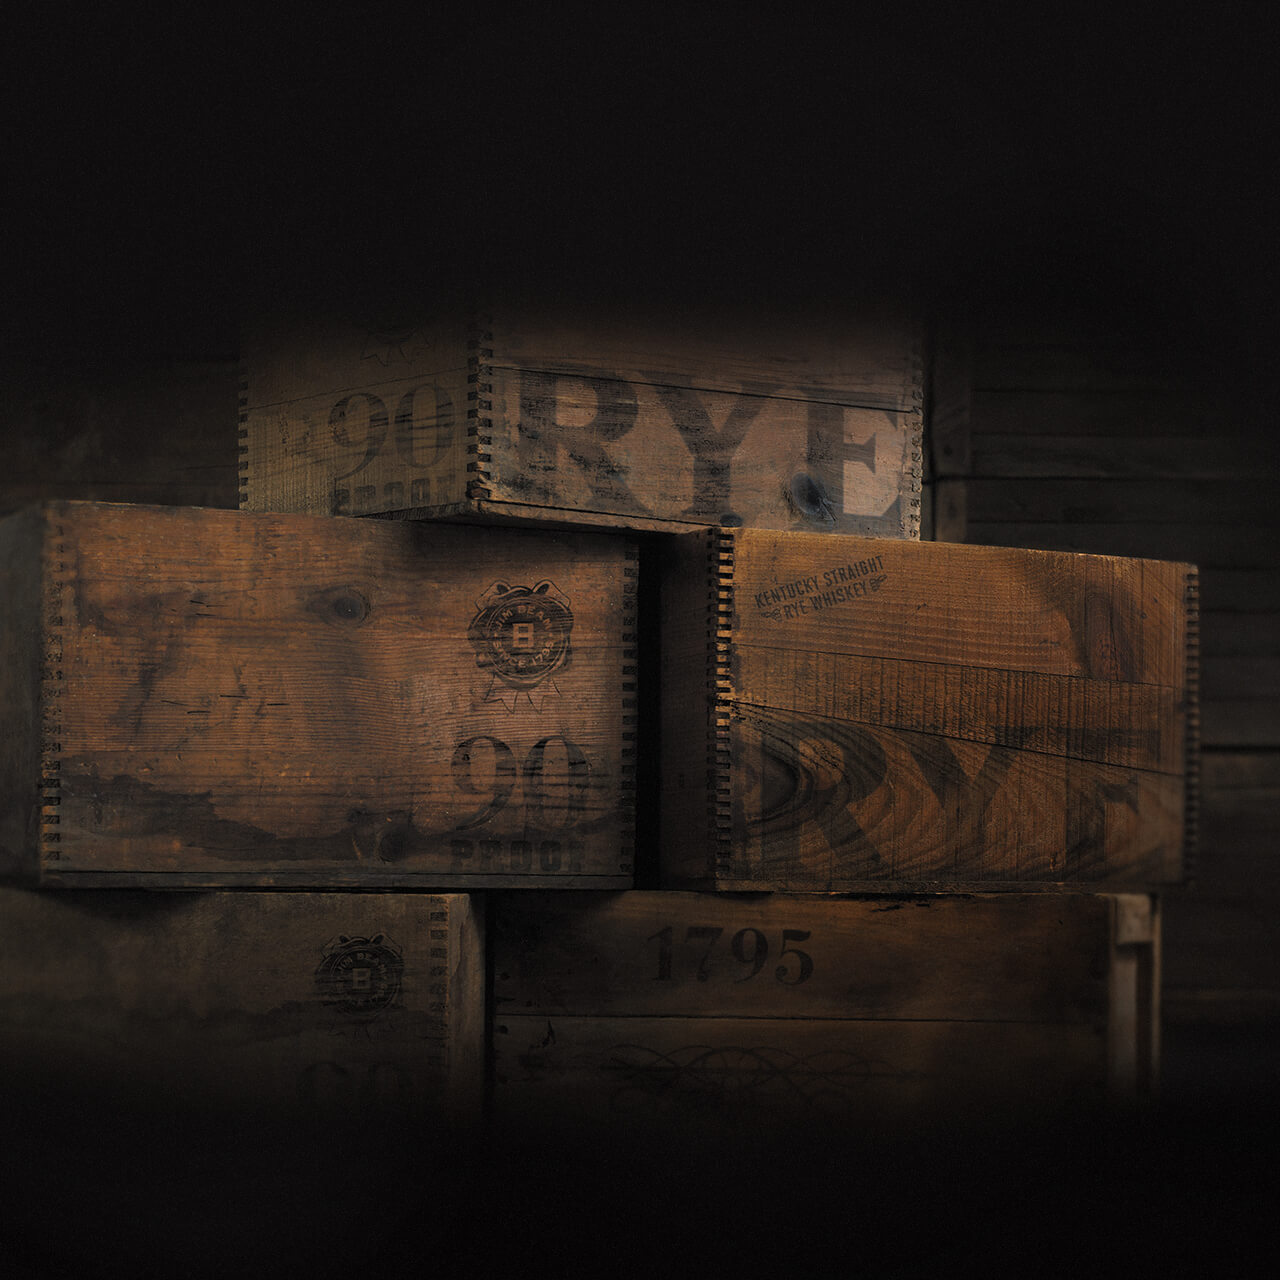 Crates filled with Rye.